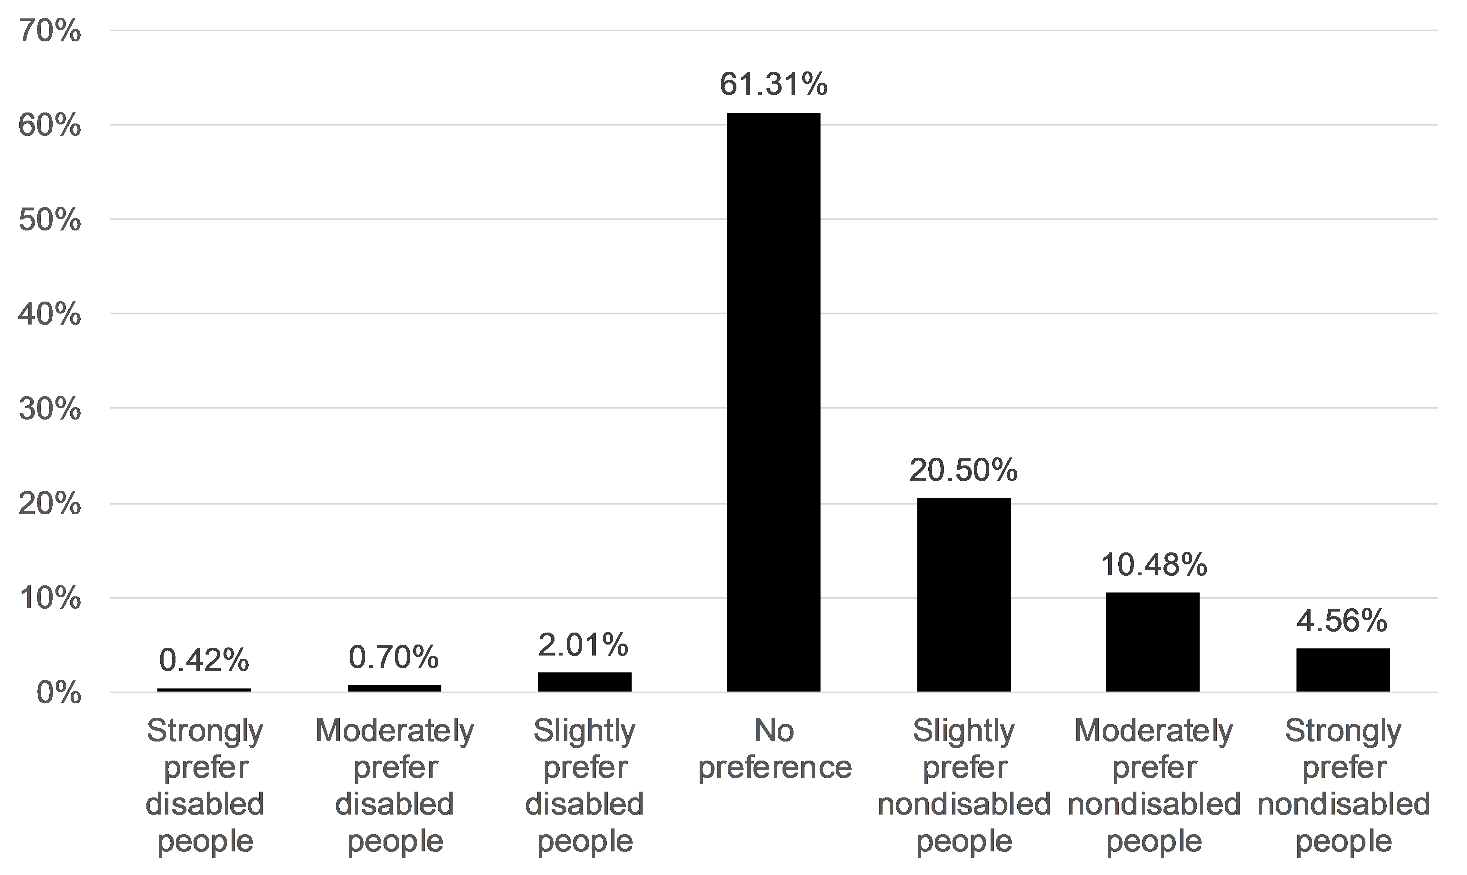 Figure 1. Distribution of participants' explicit preferences for